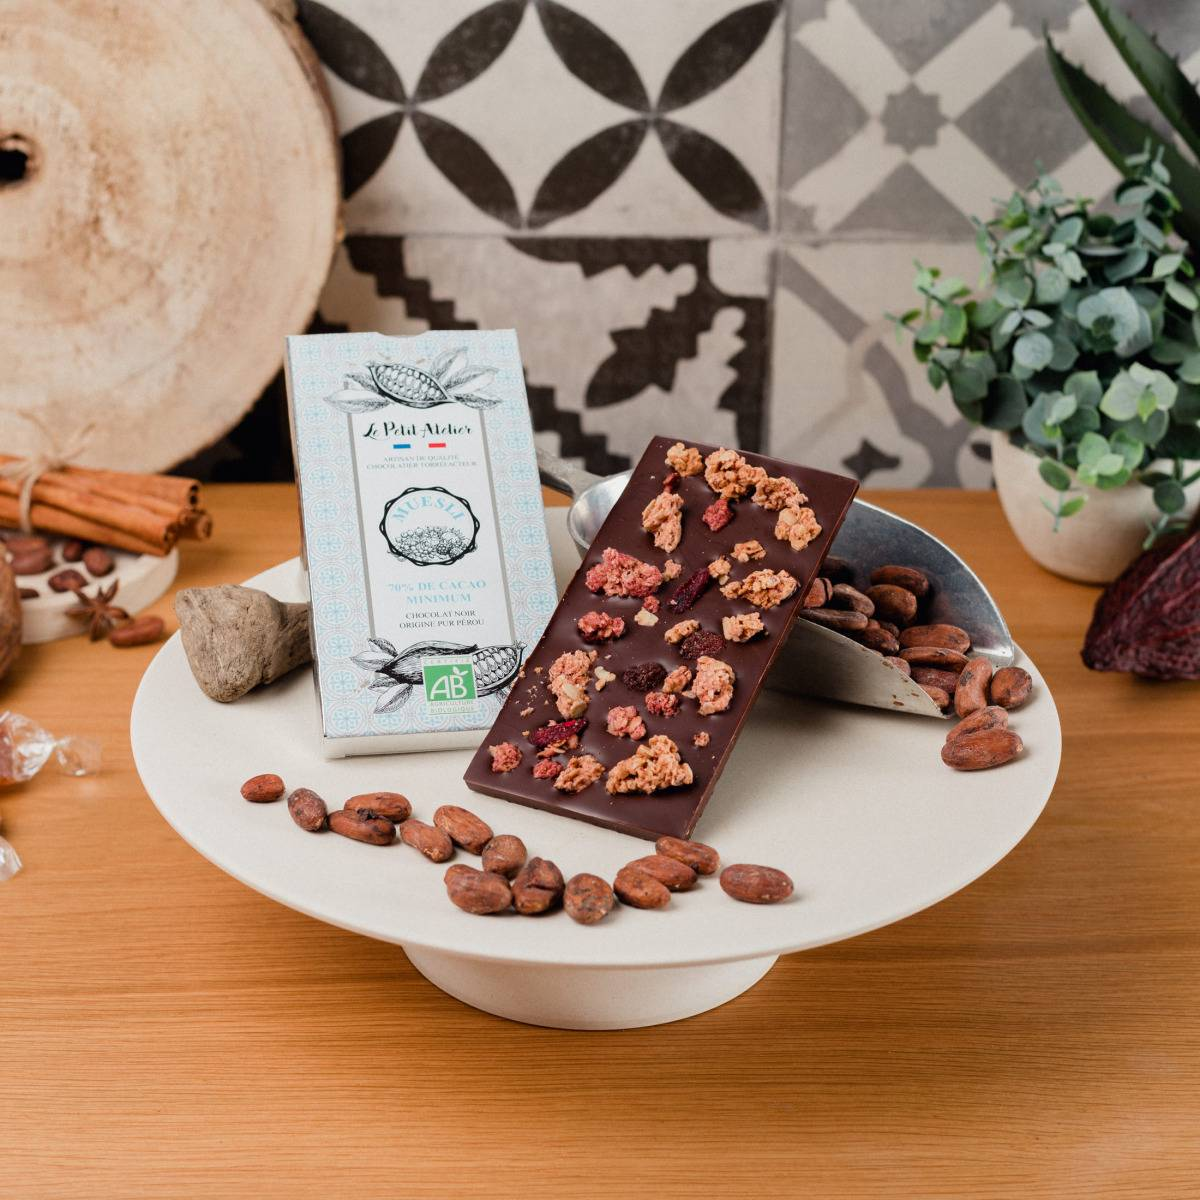 Le Petit Atelier Tablette Chocolat Noir Bio Au Muesli Aux Fruits Rouges